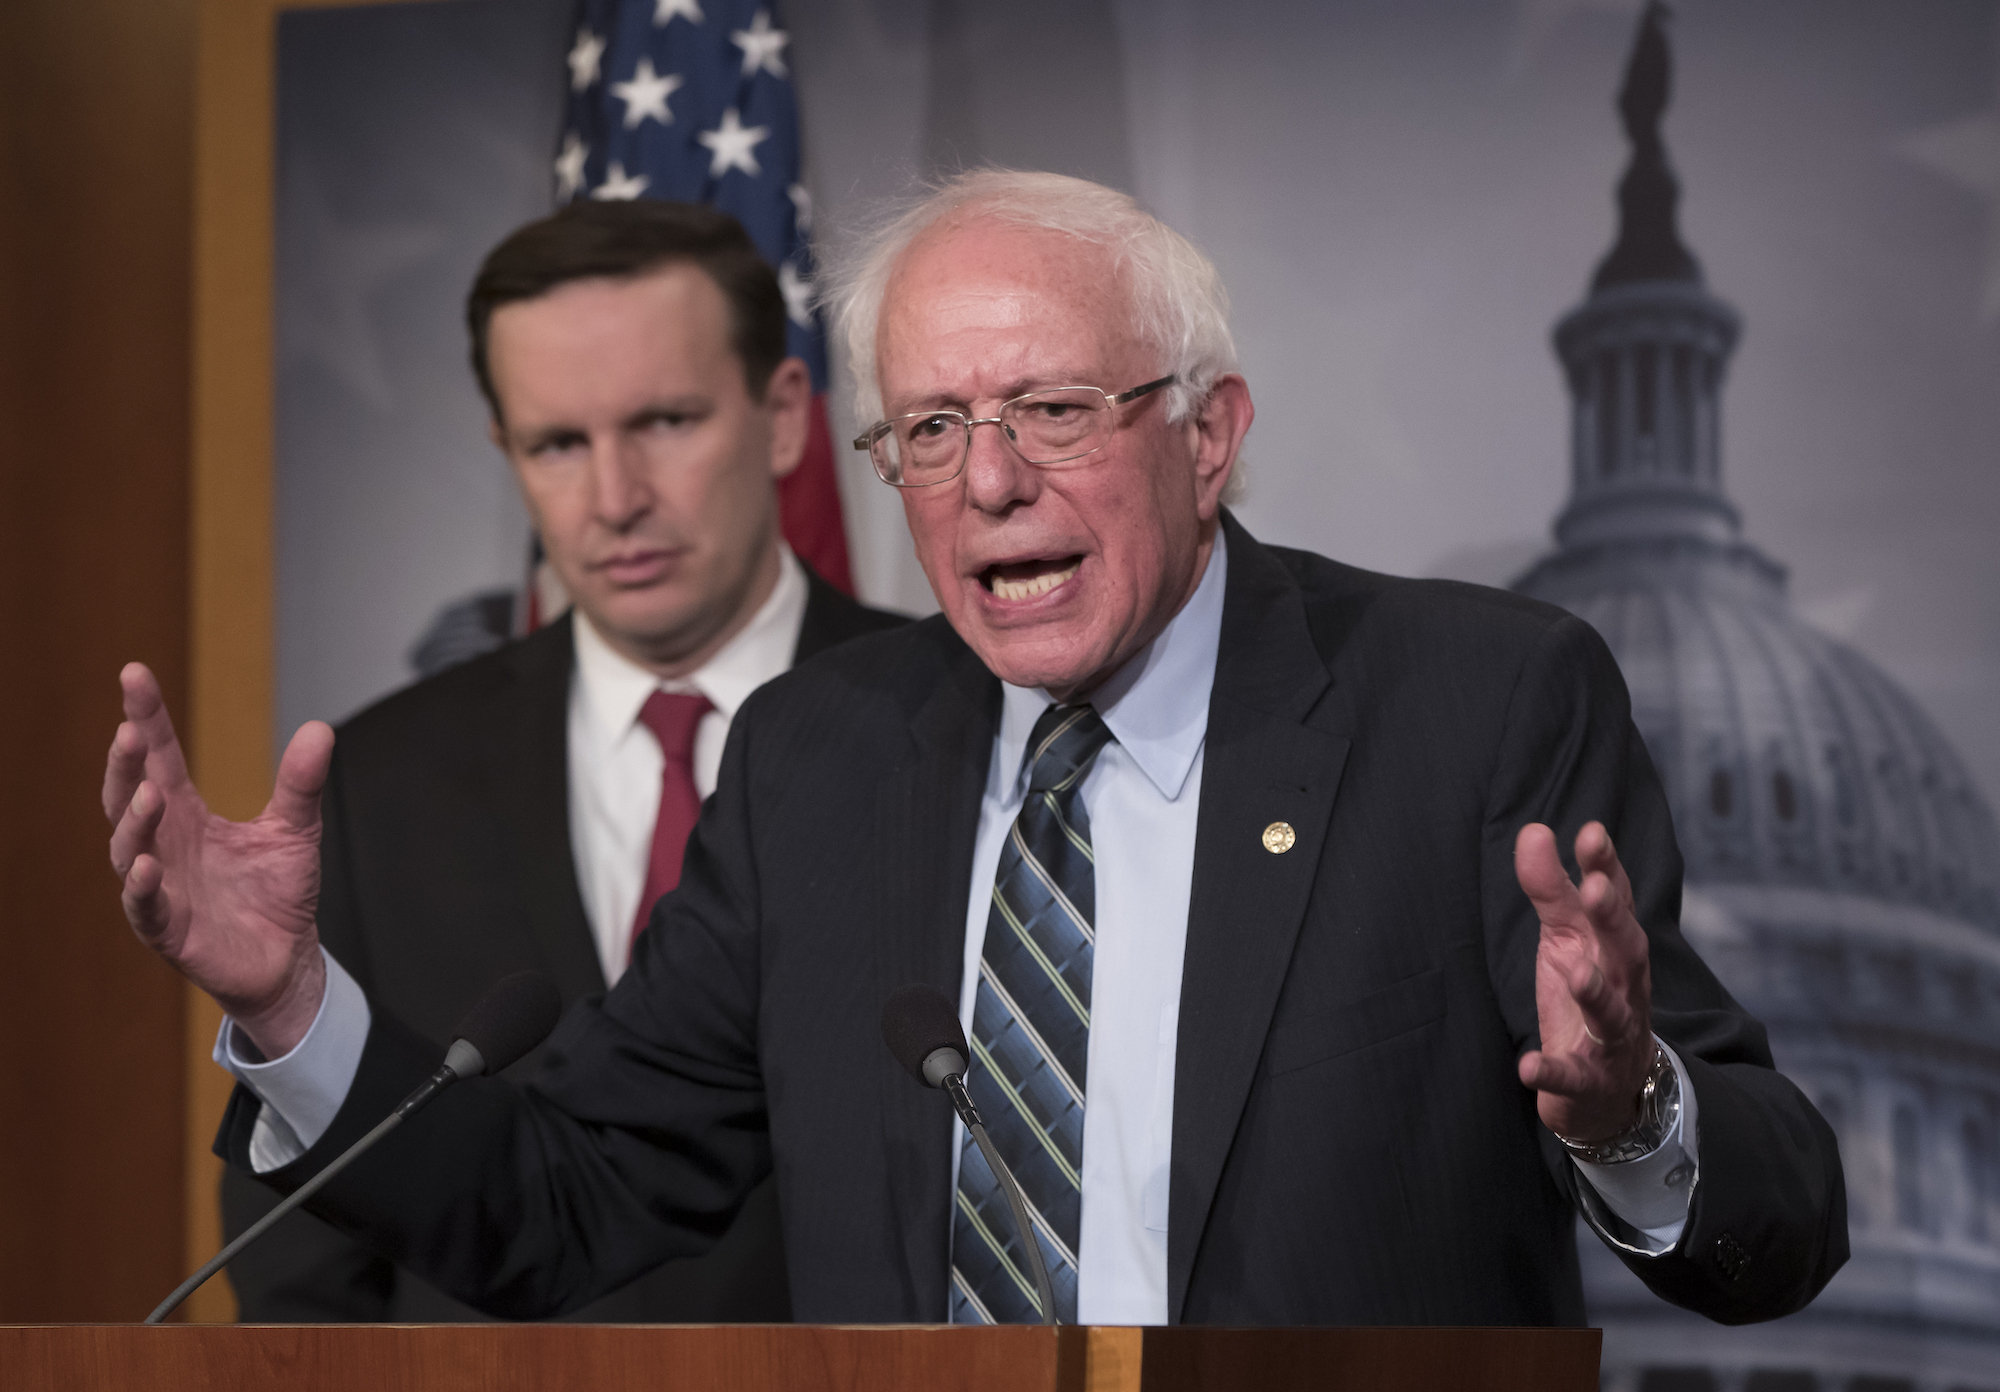 Senator Bernie Sanders, a Democrat from Vermont, joined at left by Senator Chris Murphy, a Democrat from Connecticut, holds a news conference after the Senate passed a resolution that would pull U.S. assistance from the Saudi-led coalition in Yemen, at the Capitol in Washington, DC, Dec. 13, 2018. (AP Photo/J. Scott Applewhite)